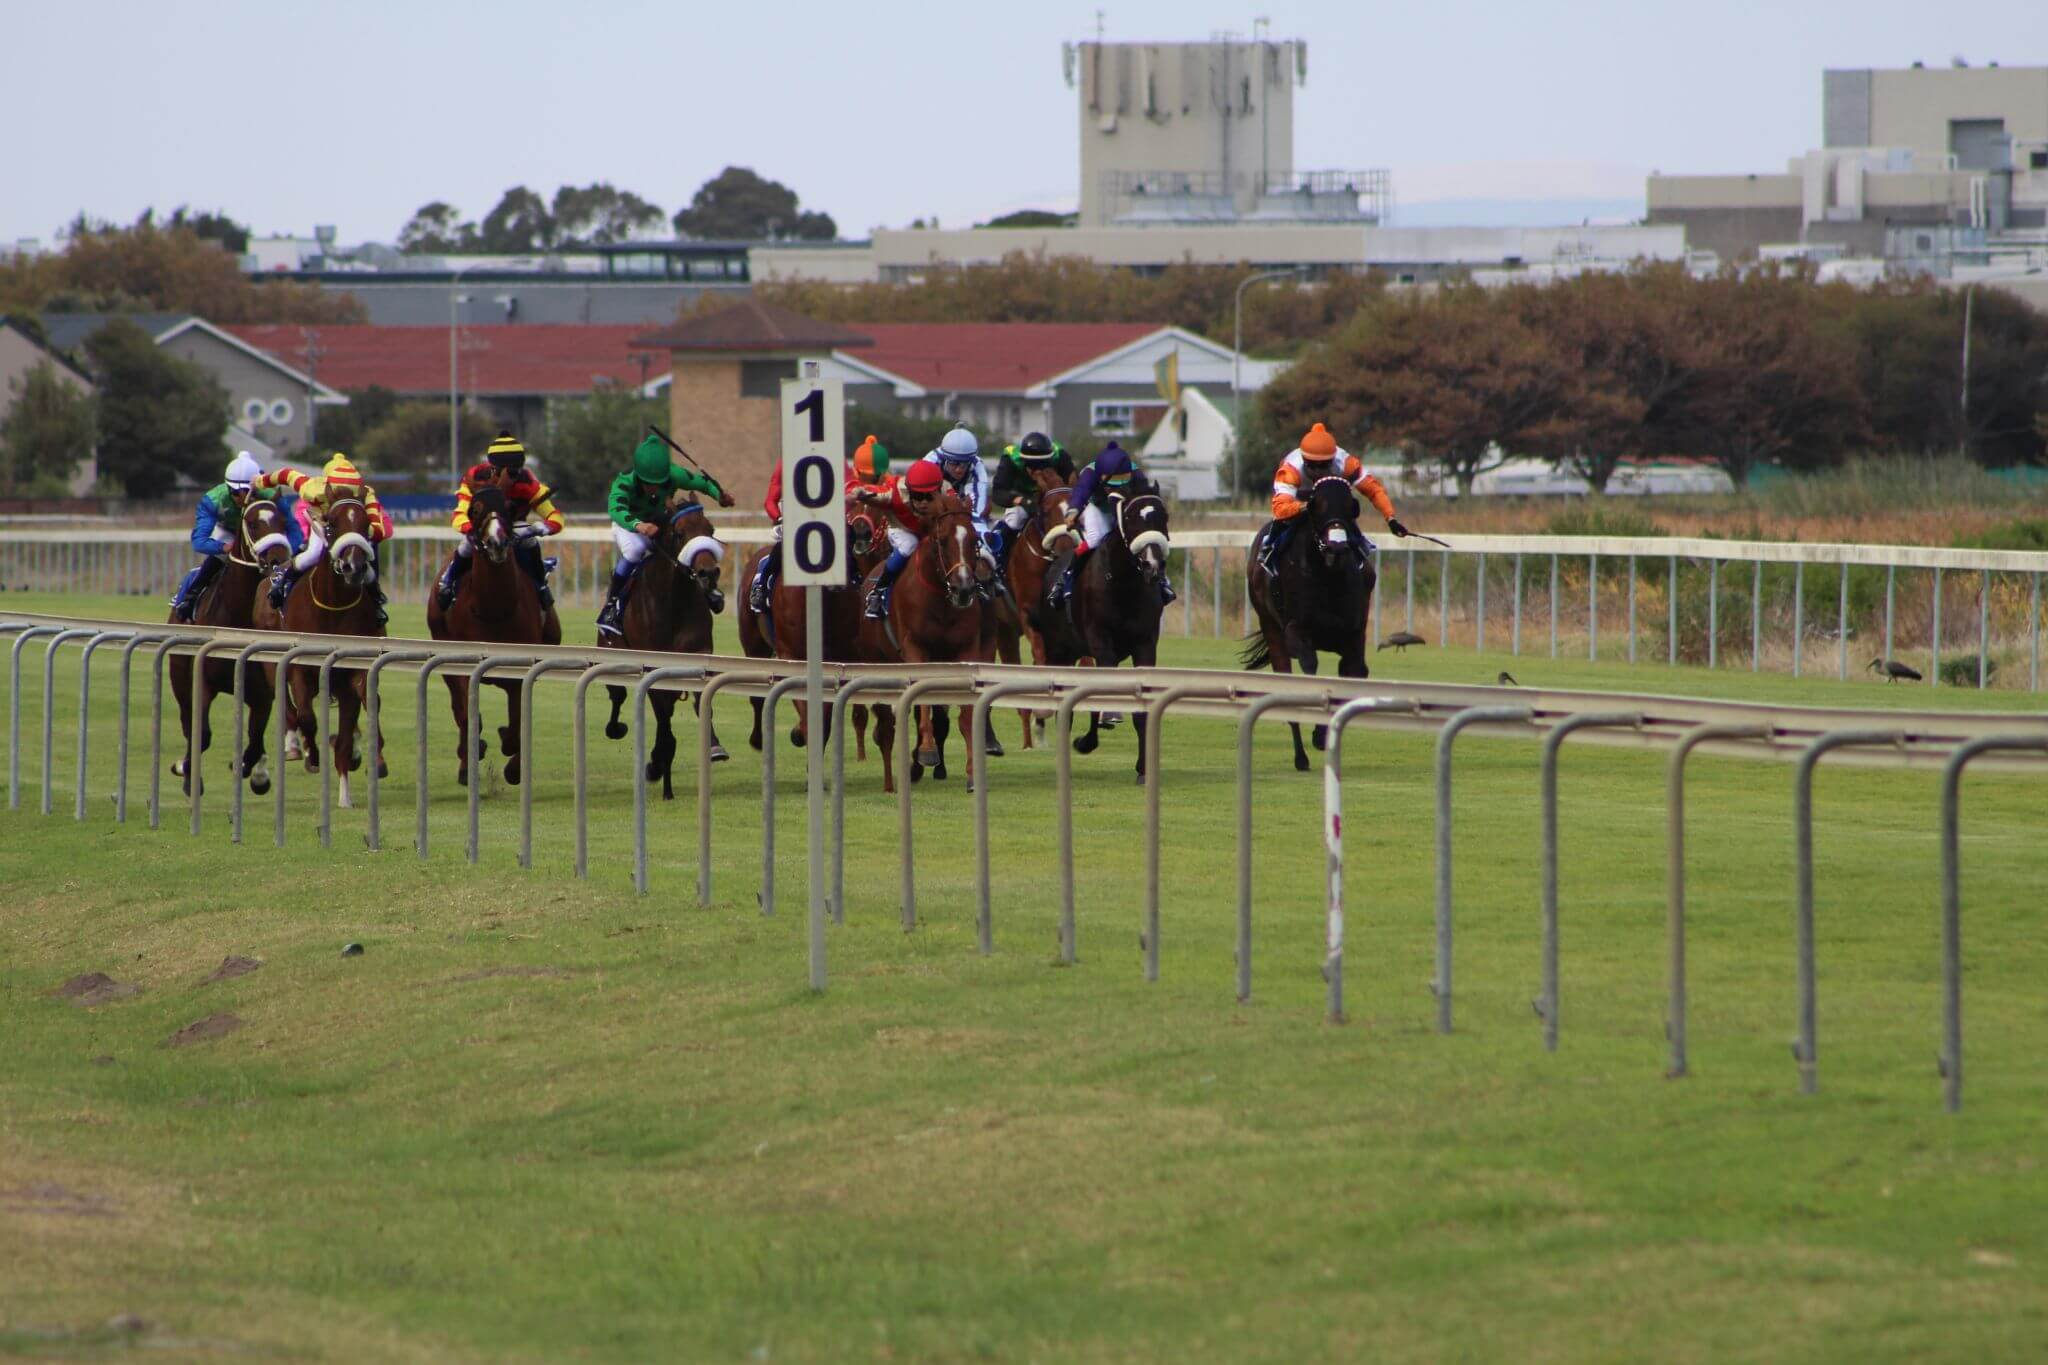 Horses For Causes - A Premier Race Day